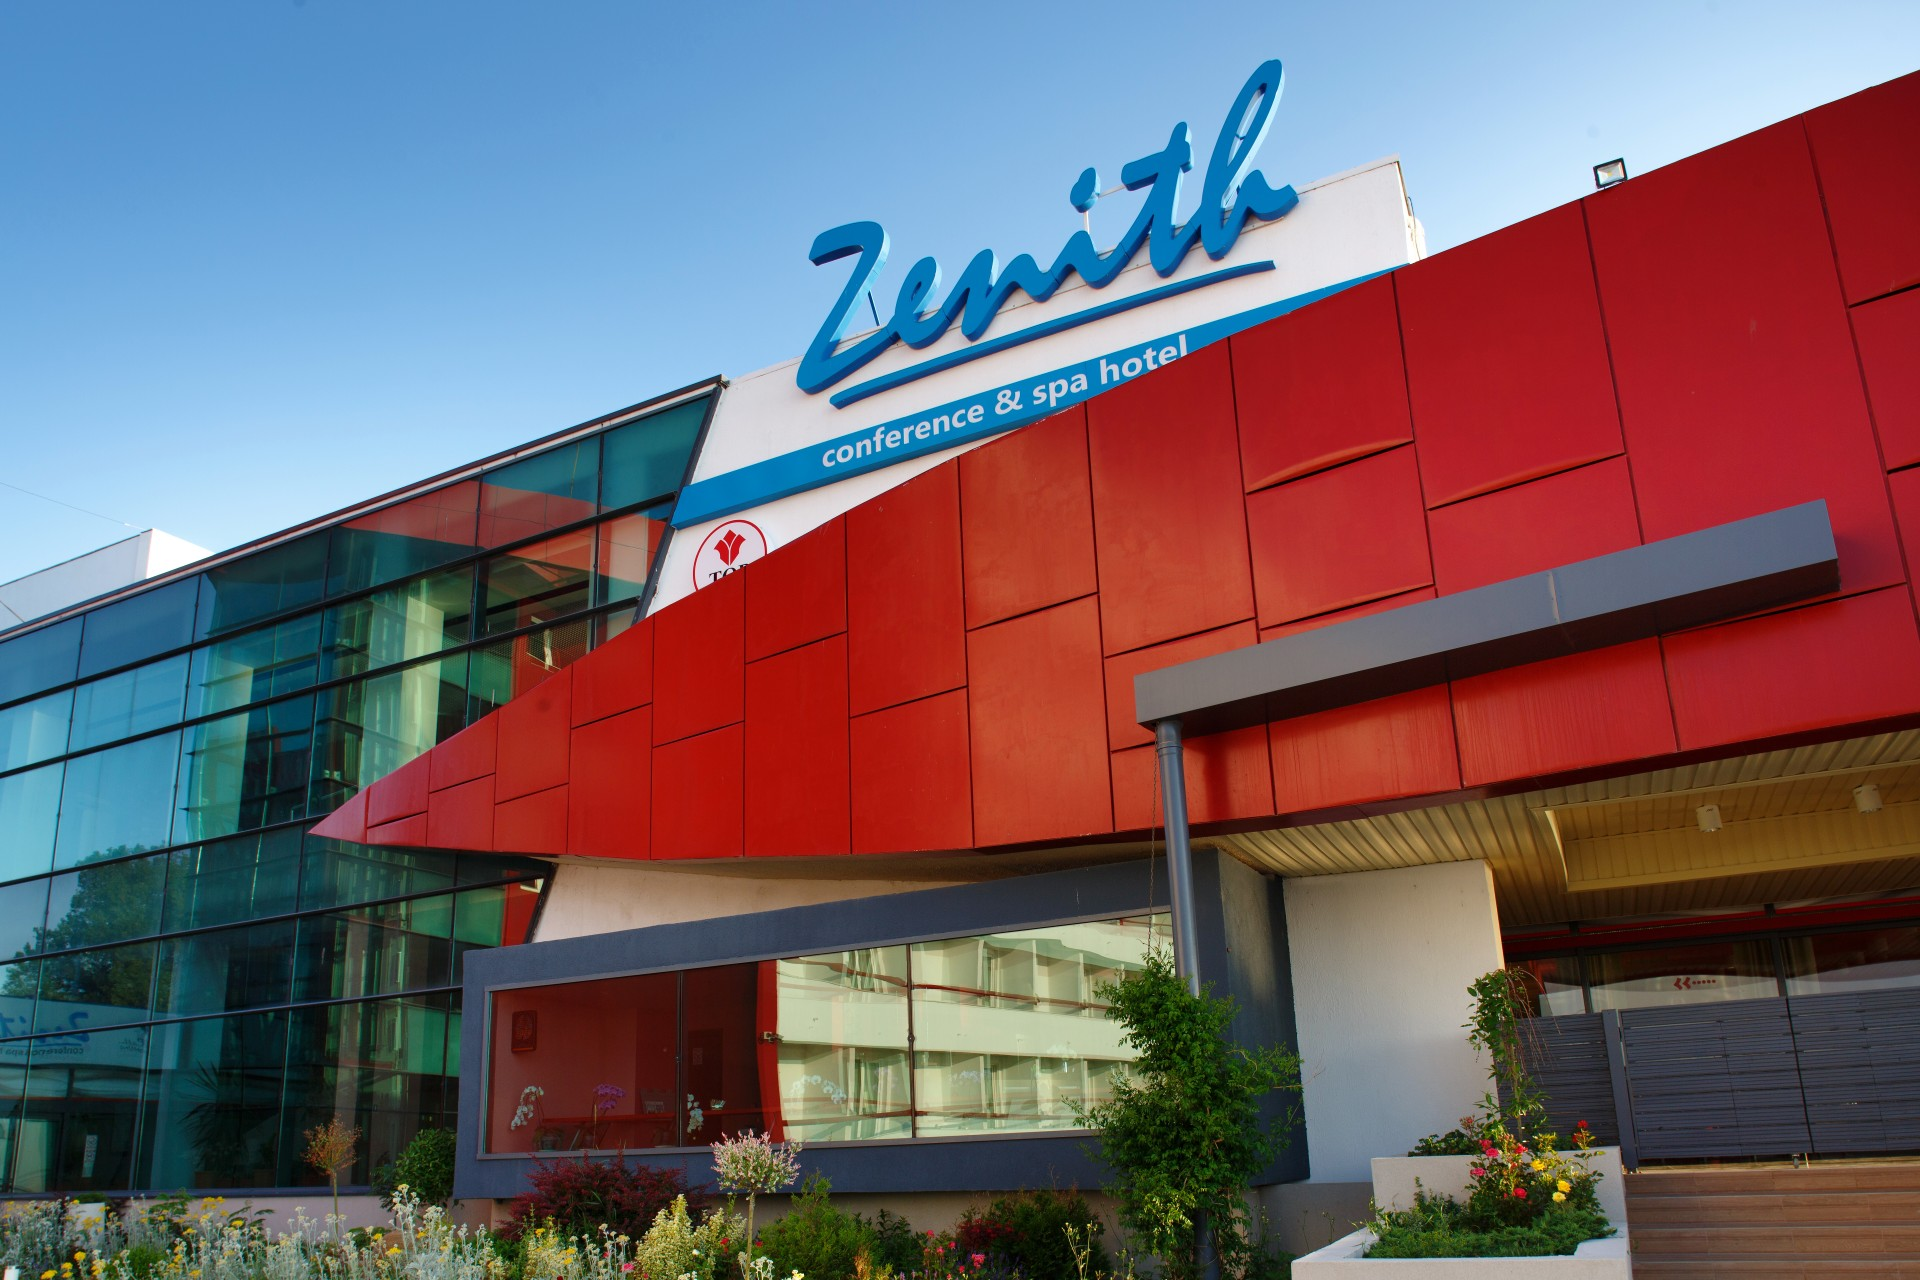 Zenith Conference & Spa